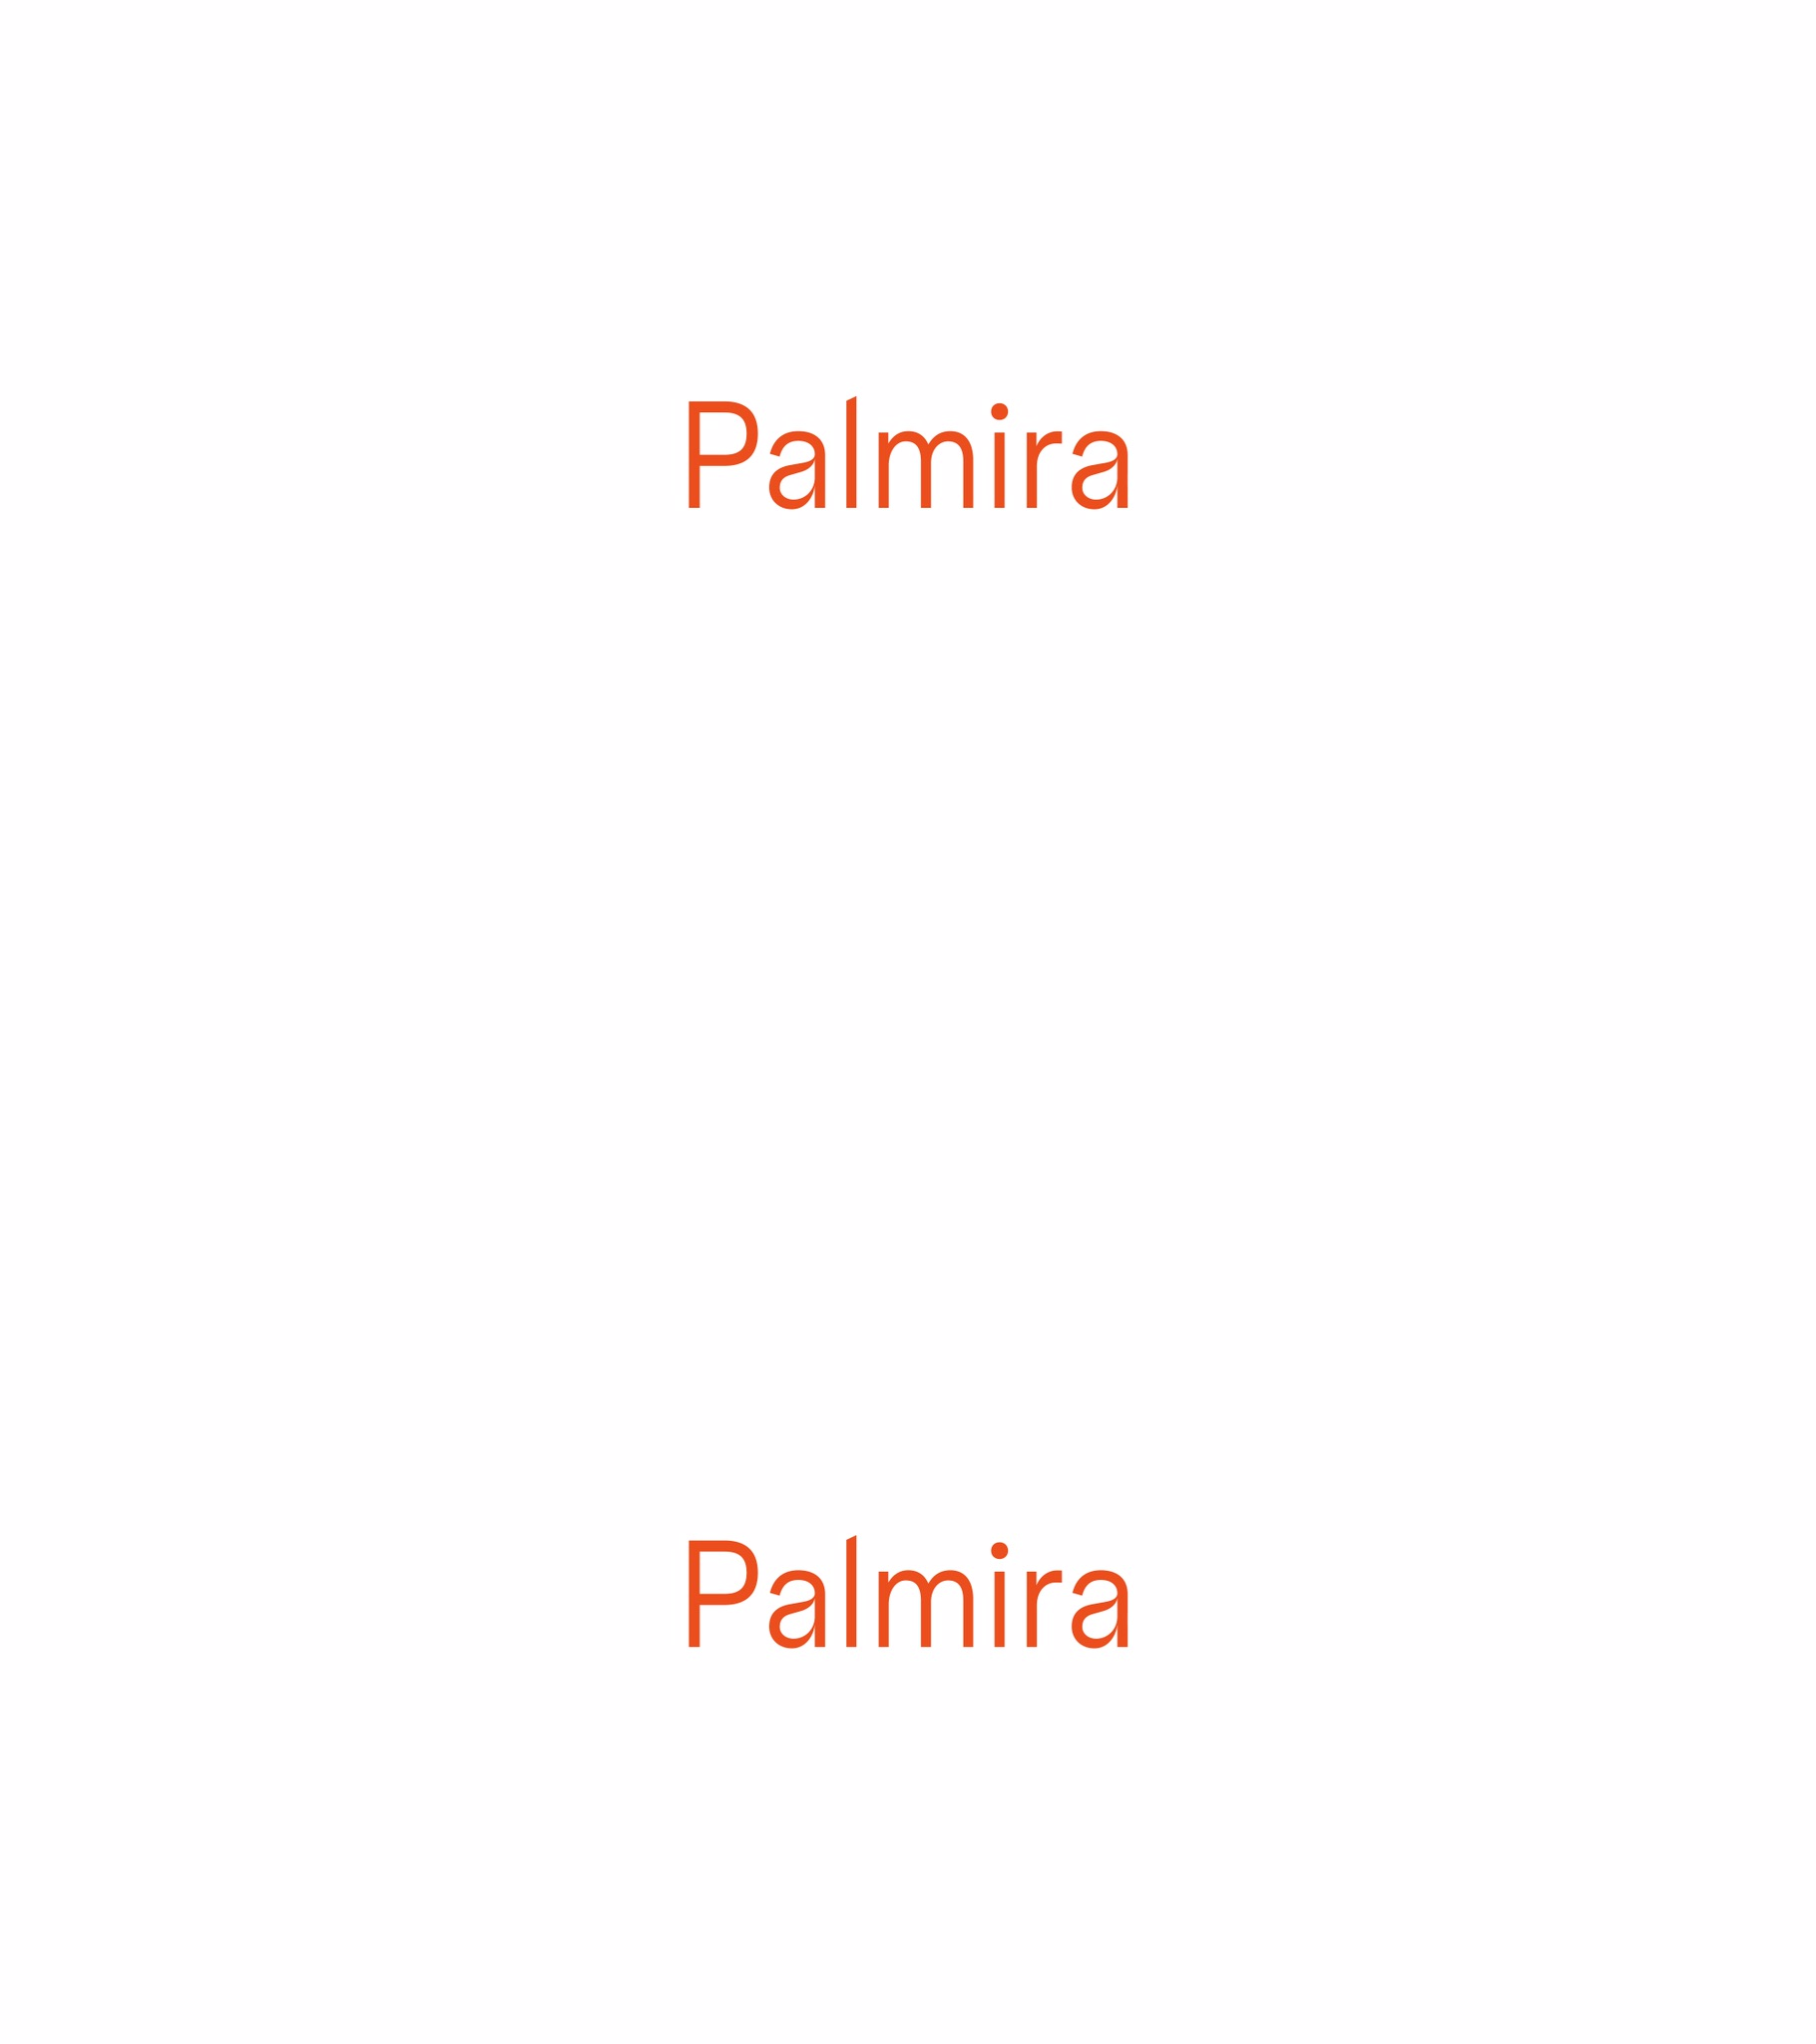 Vergés Basic<br /> is now Palmira!<br /> Visit the website - Vergés